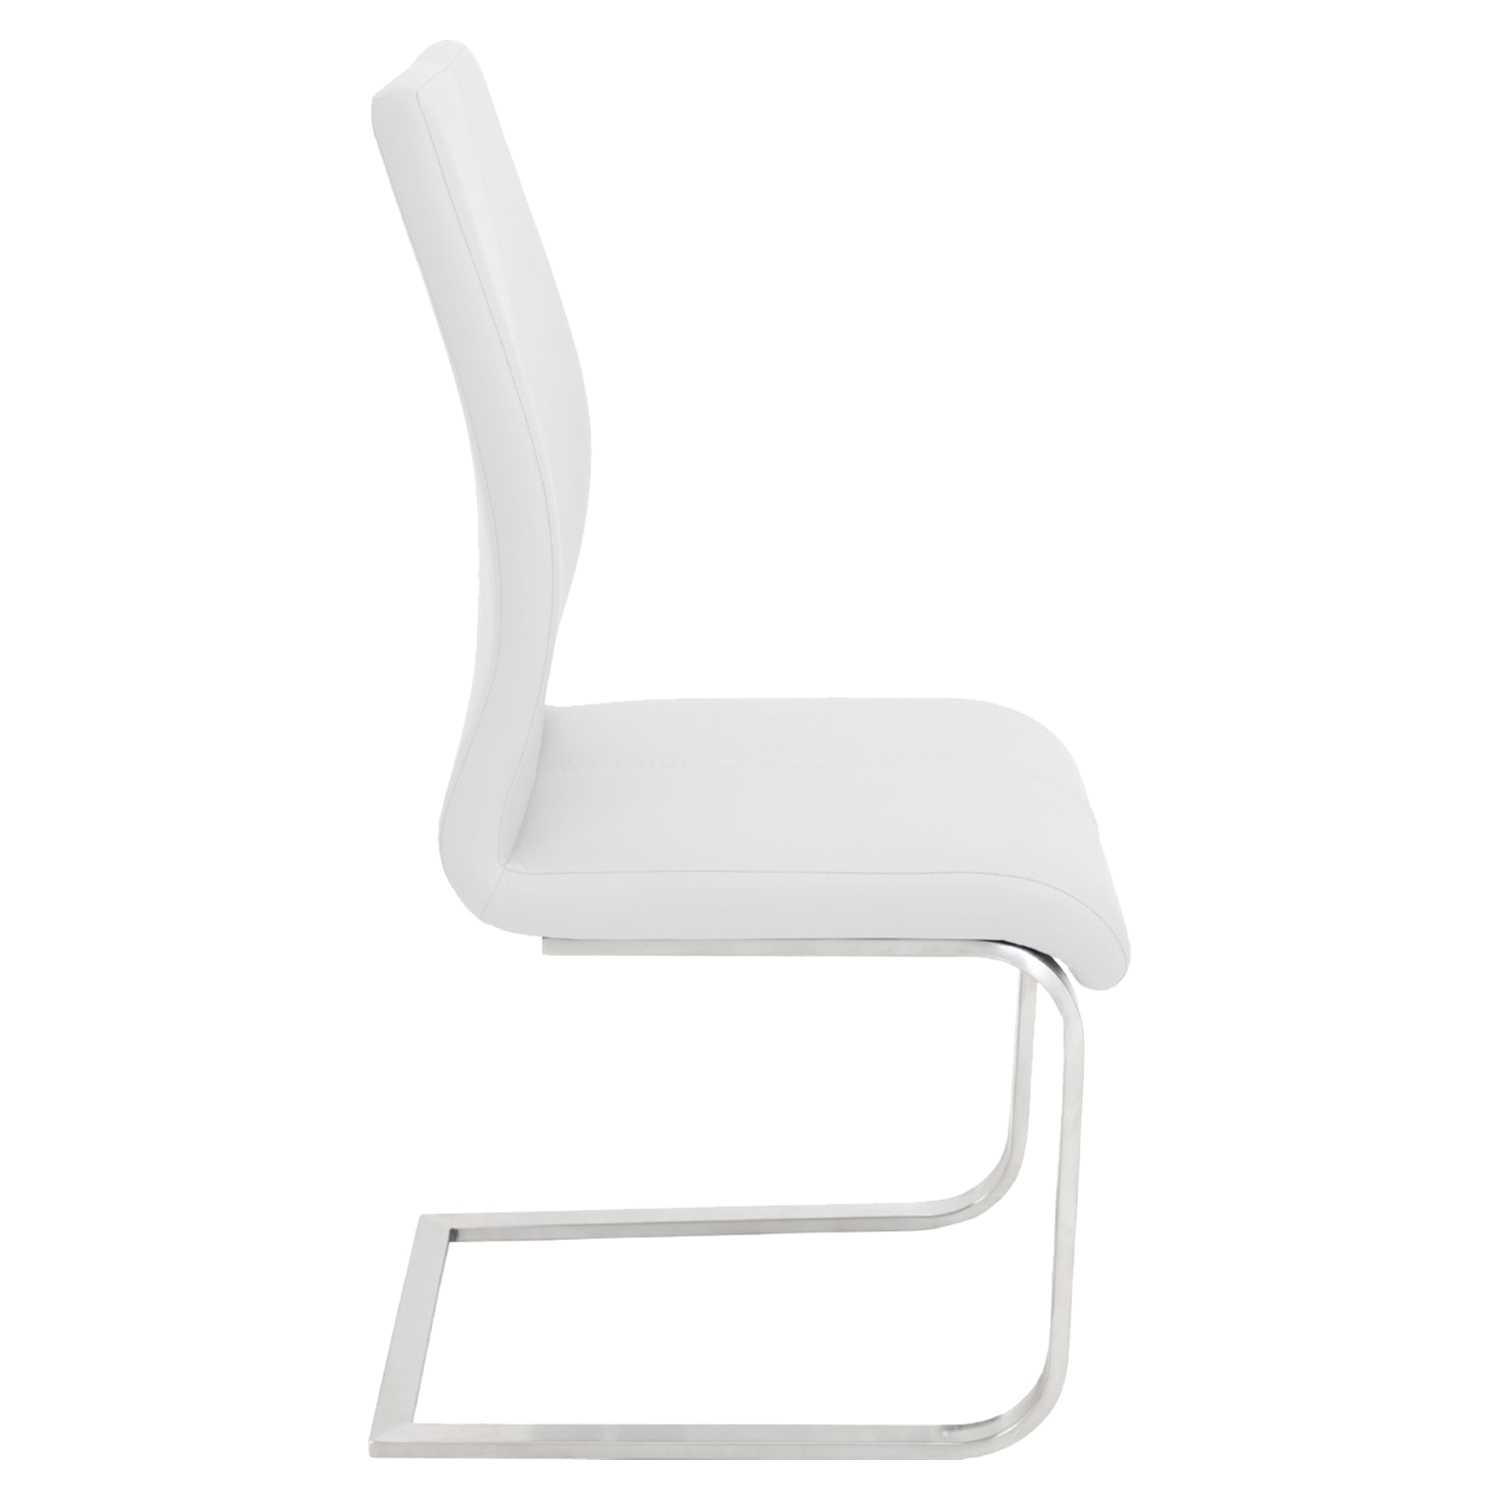 Dynasty Dining Chair - White (Set of 2) - LMS-DC-DNSTY-W2